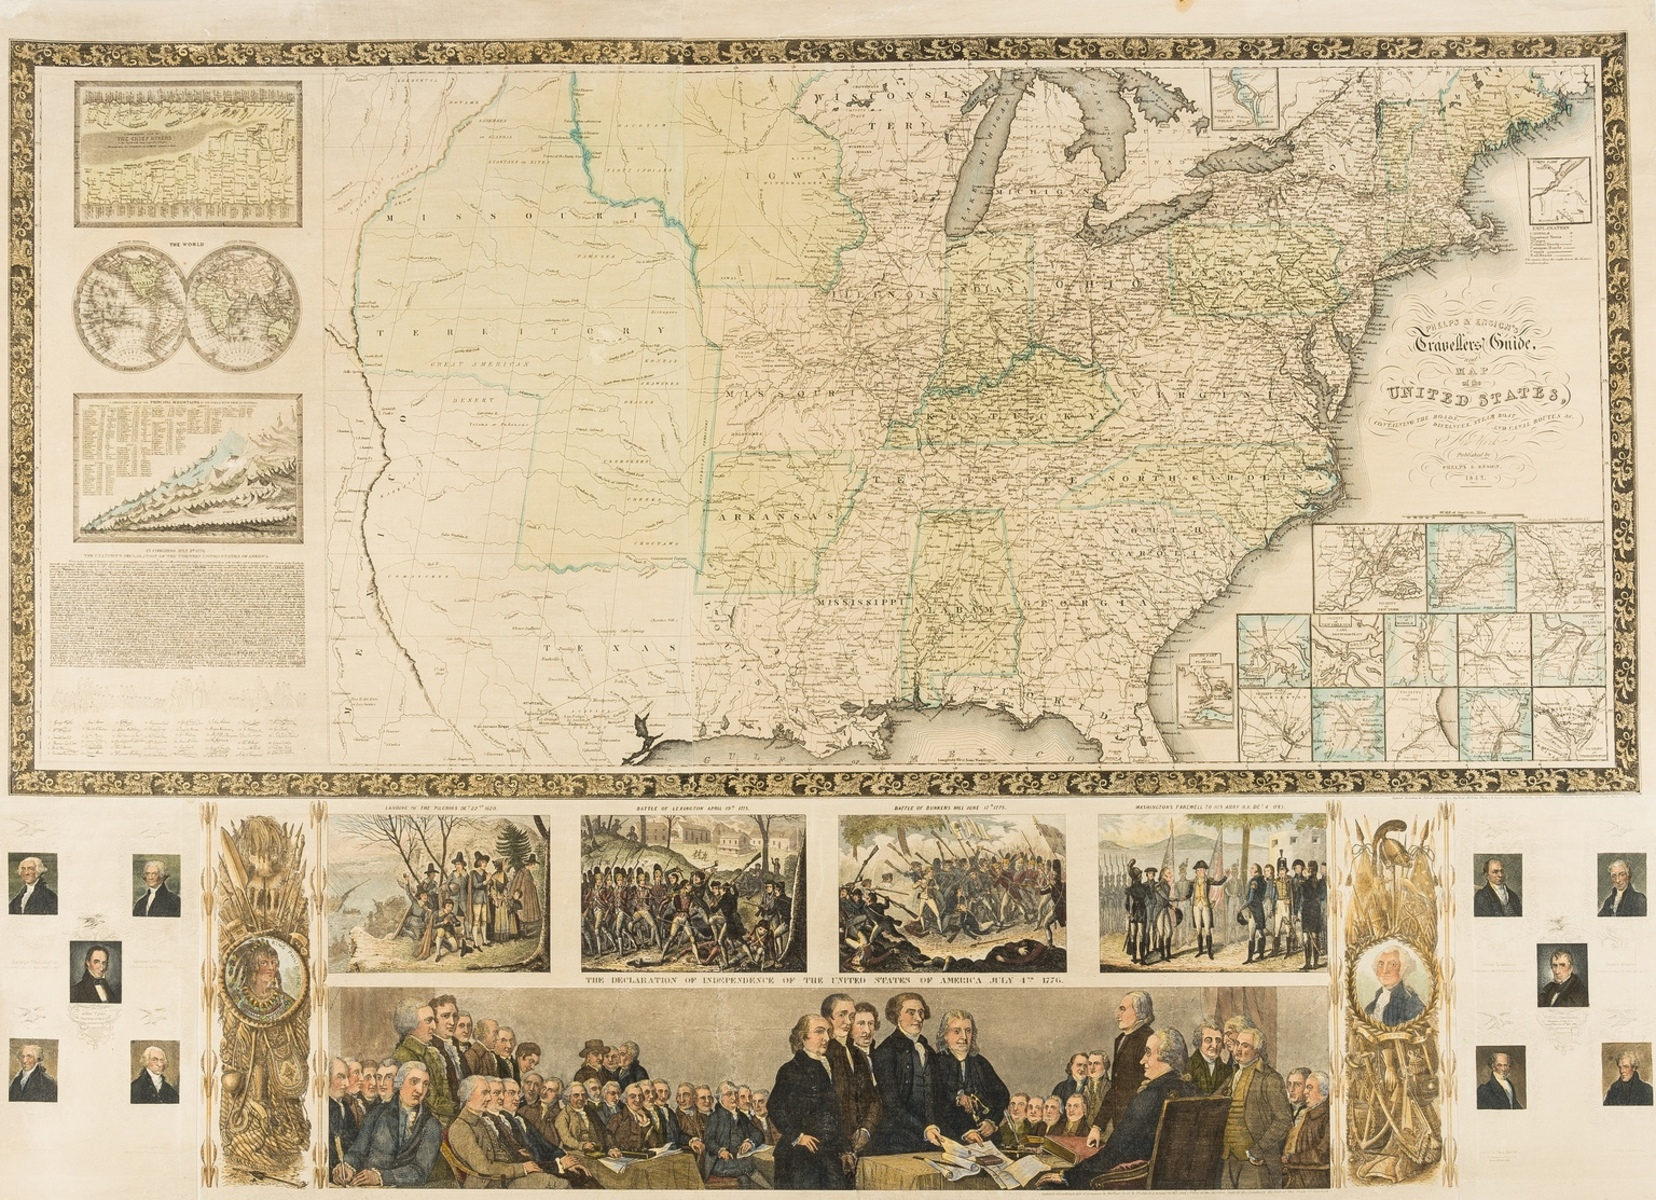 America.- Phelps (Humphrey) & Edward Hooker Ensign. Phelps & Ensign's Travellers Guide and Map of …